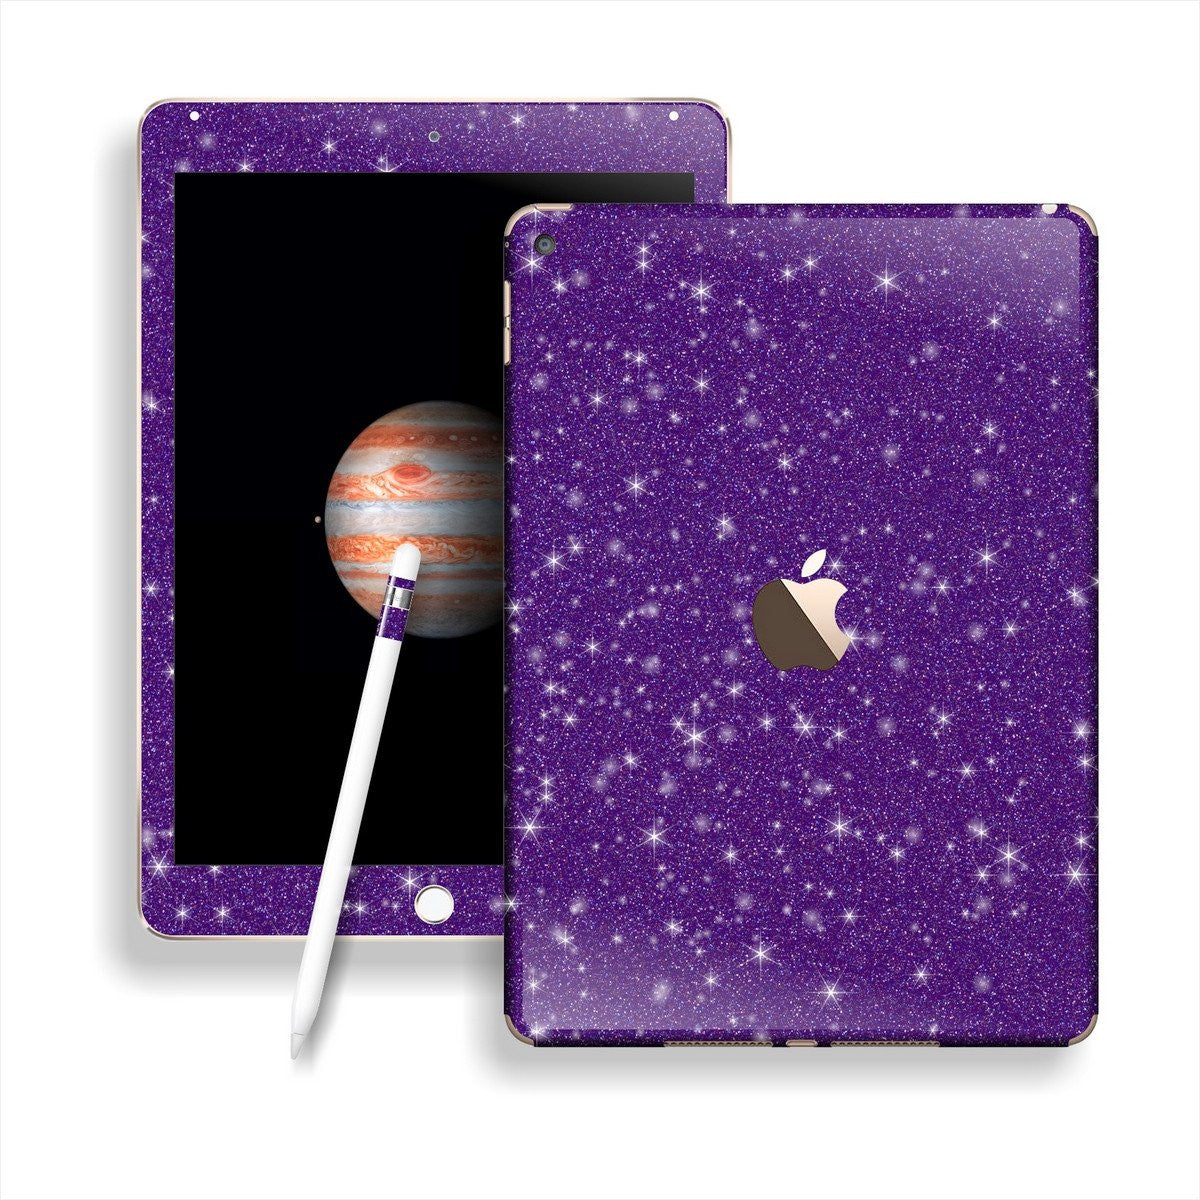 iPad PRO Diamond PURPLE Glitter Shimmering Skin Wrap Sticker Decal Cover Protector by EasySkinz